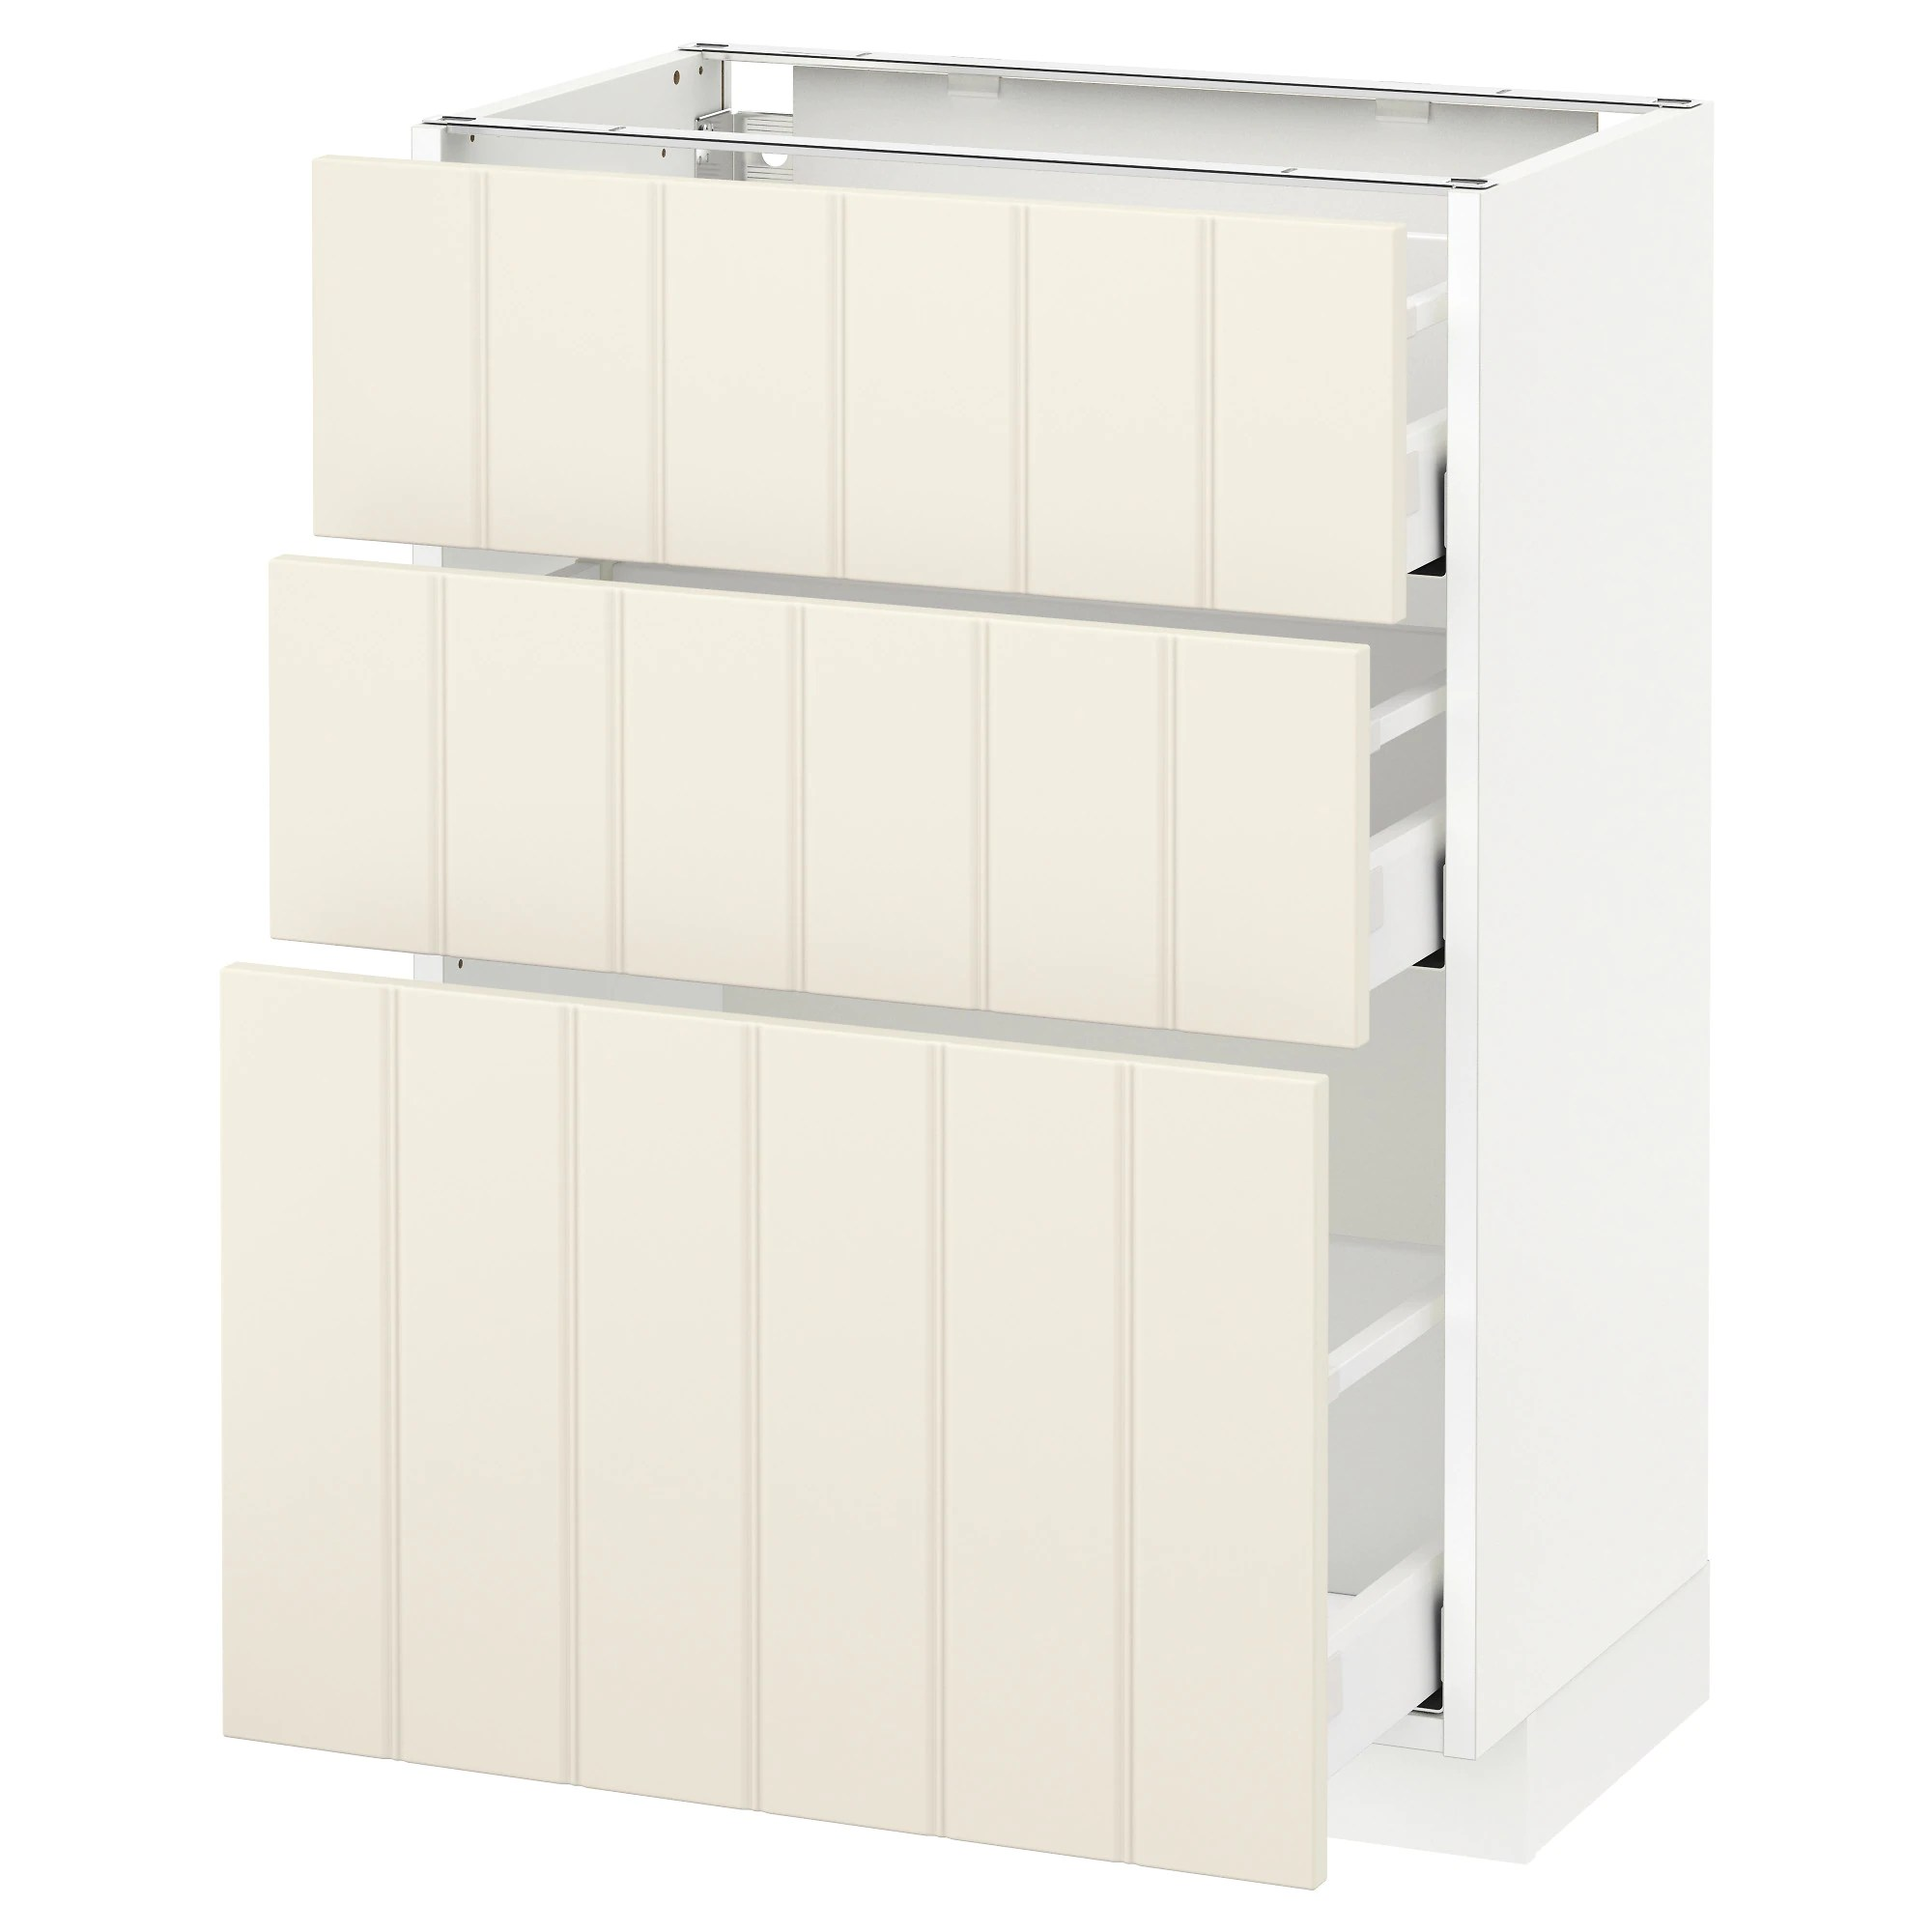 Ikea Küche Metod Maximera Metod Maximera Base Cabinet With 3 Drawers White Hittarp Off White